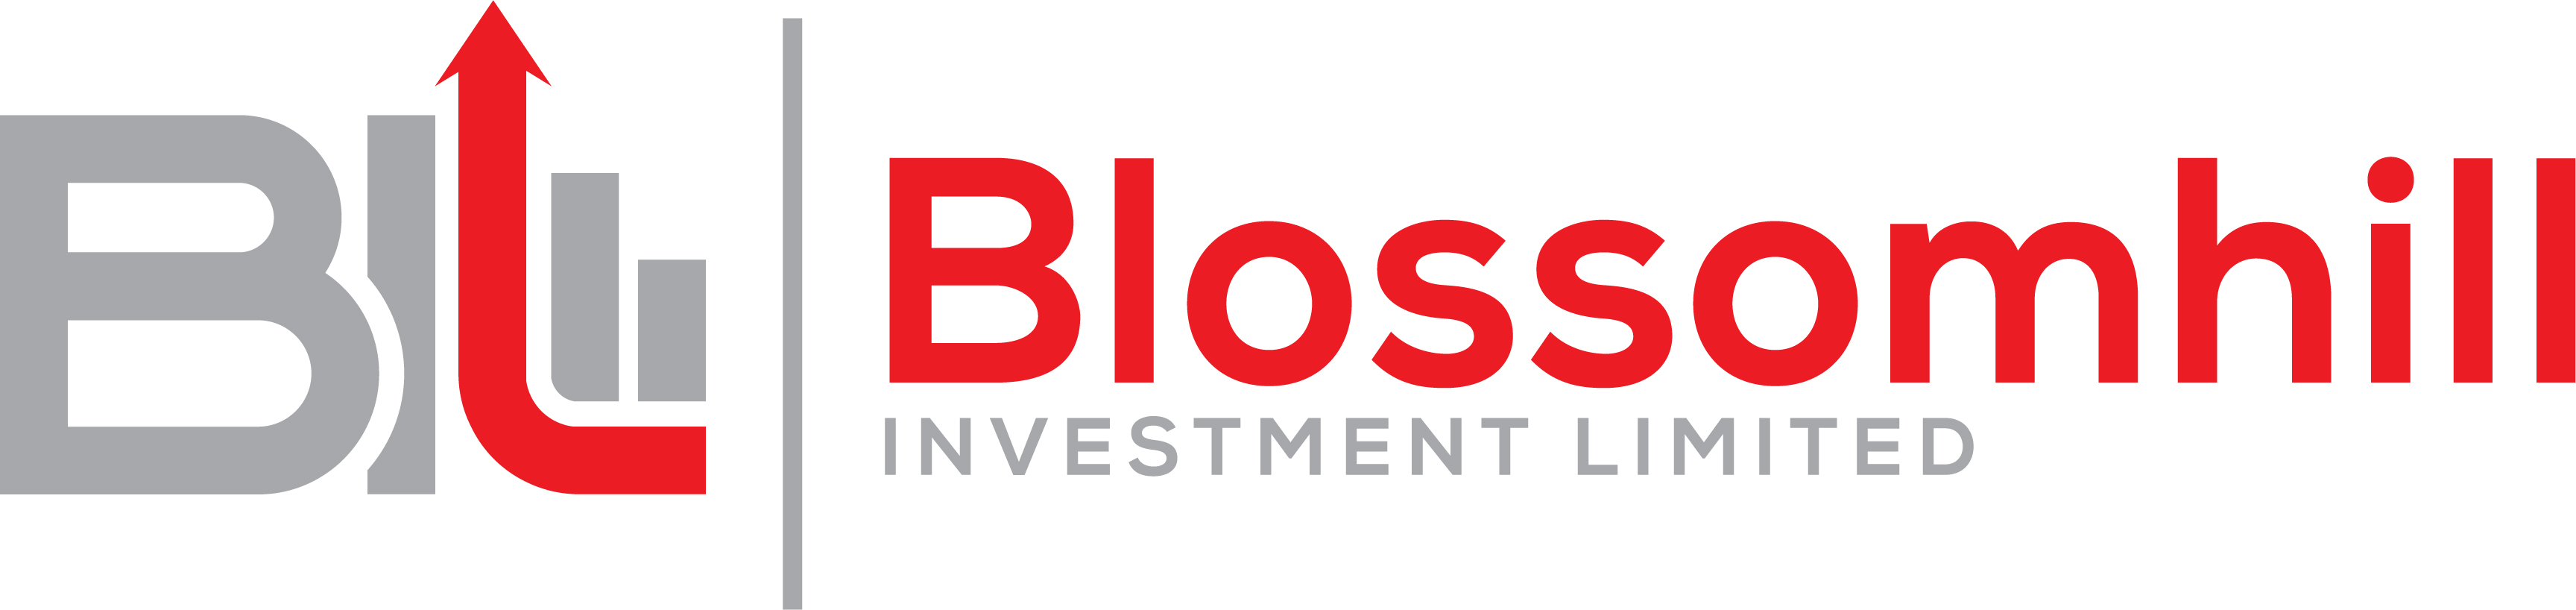 Blossomhill Investment Limited - Reveals Mobile Gaming Stock that Could Score Big for Investors